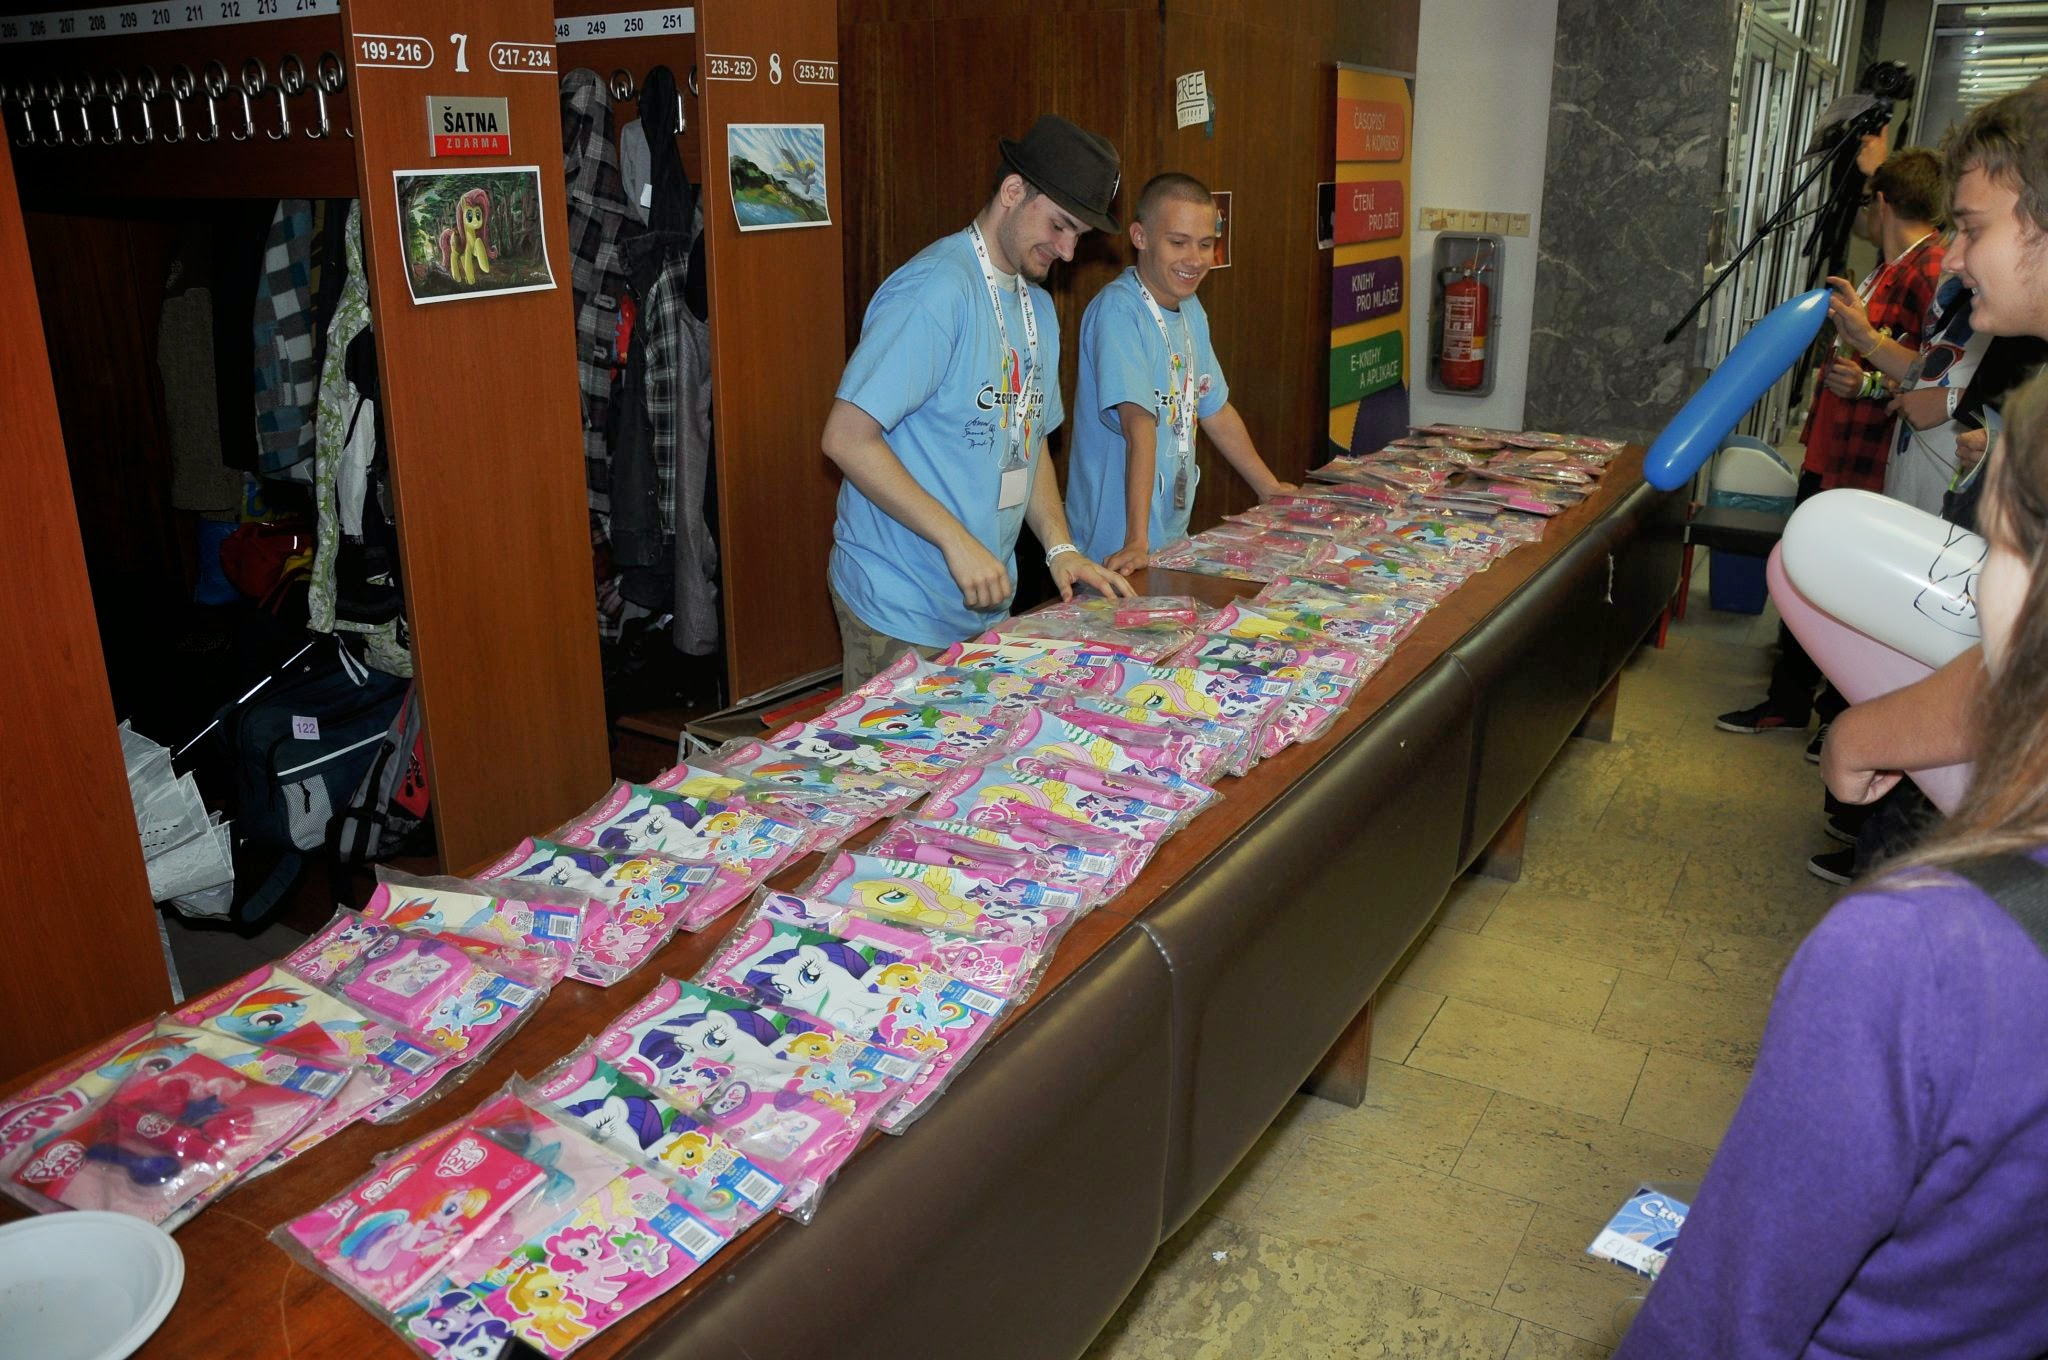 Czequestria 2014 – MLP magaznies donated by Egmont